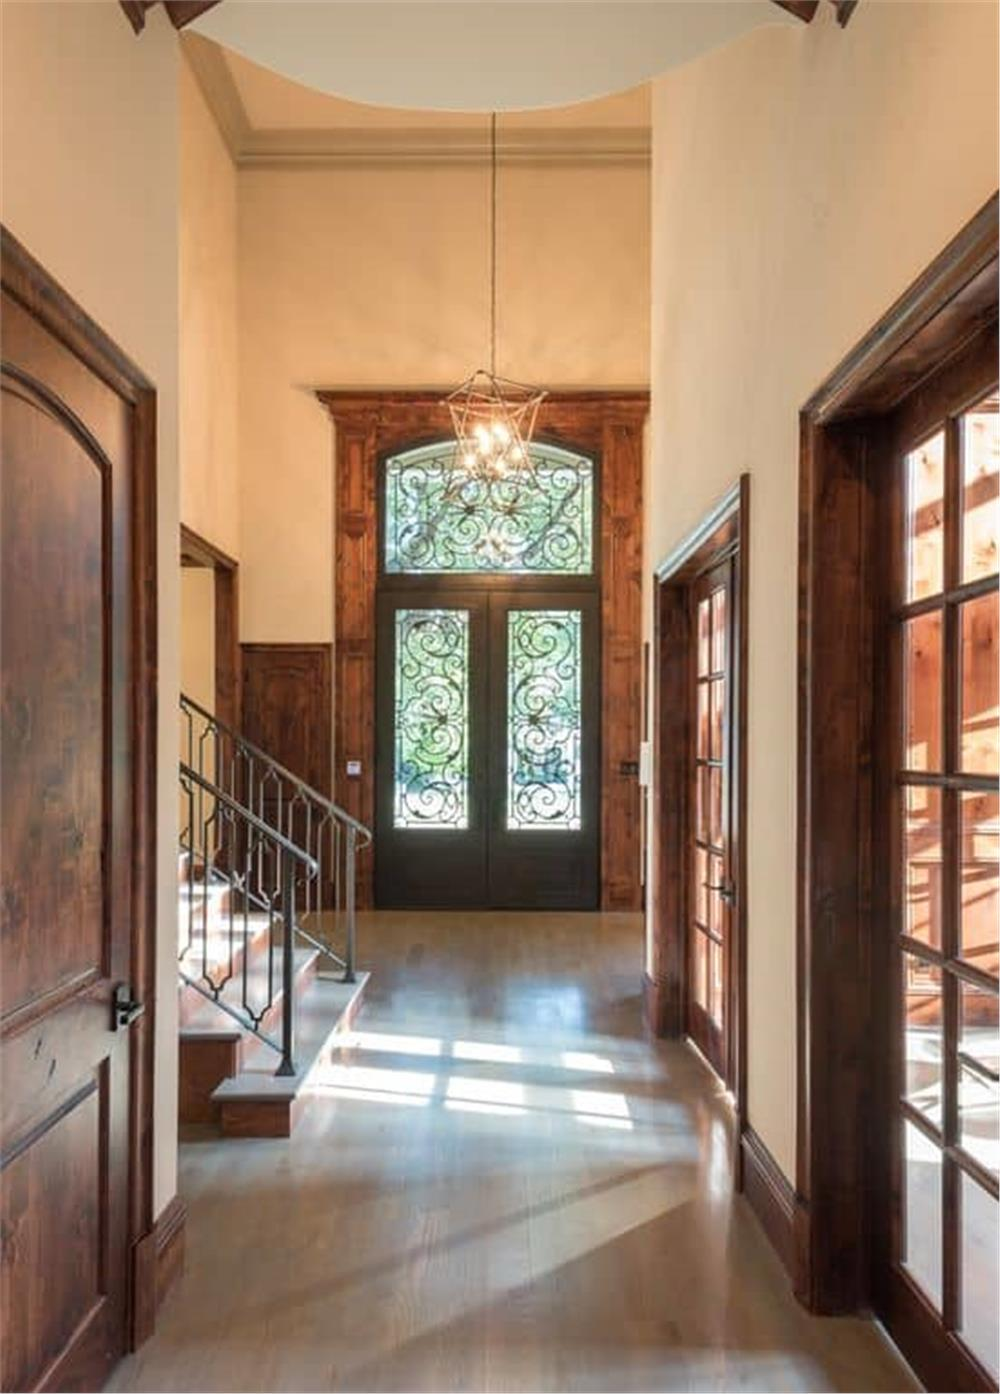 Foyer with high ceiling and decorative front door